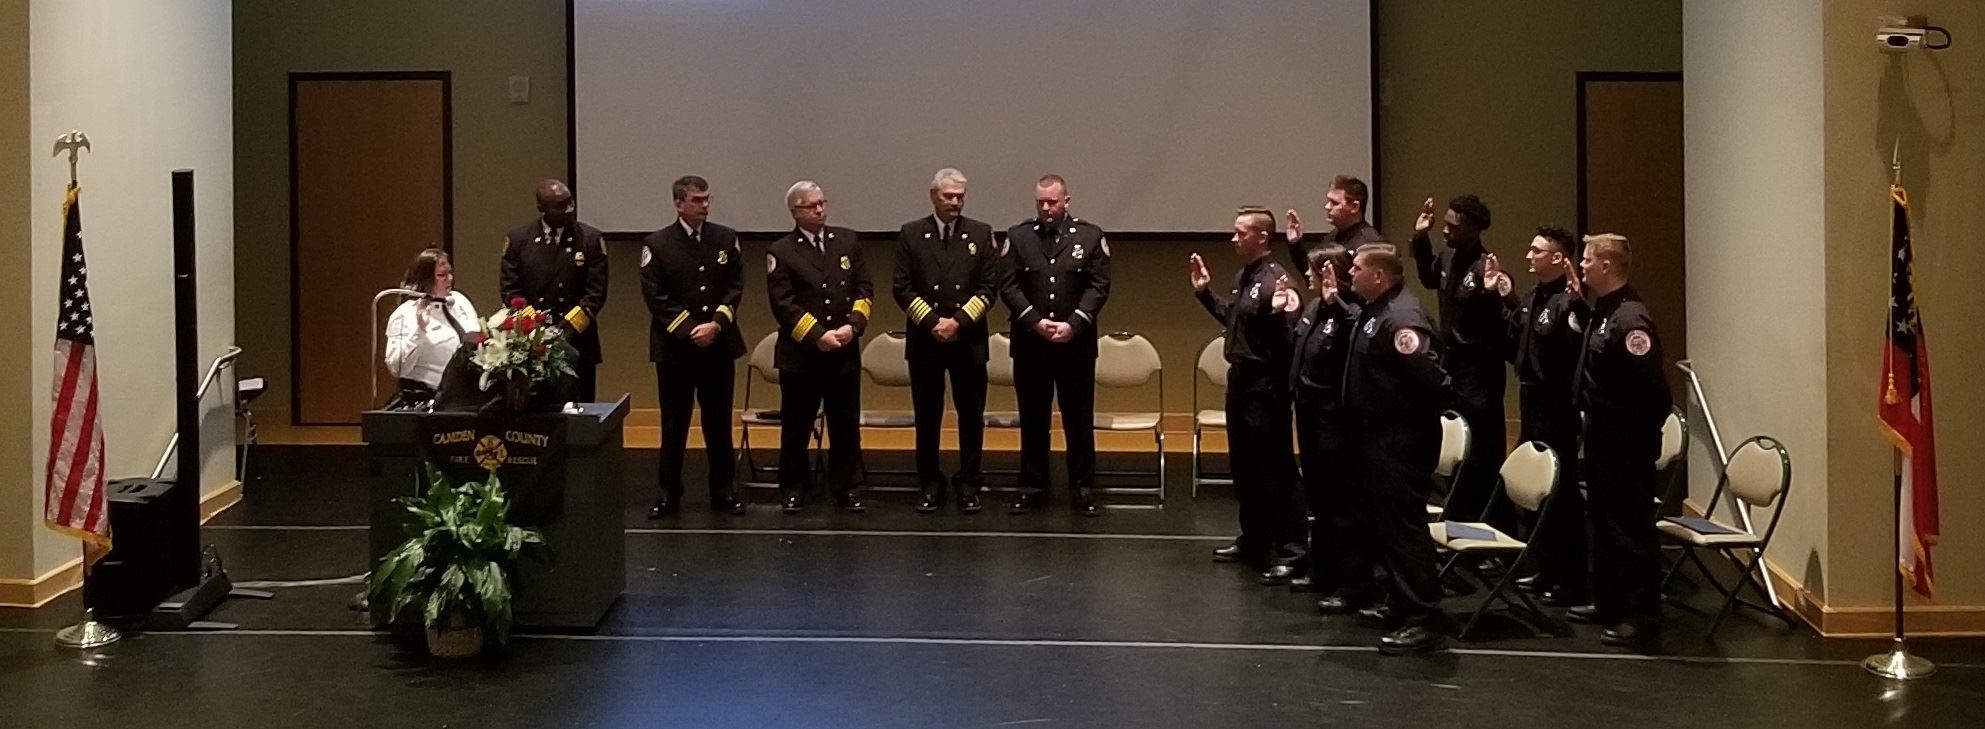 CCFR Leadership assist the new firefighters in taking their oath